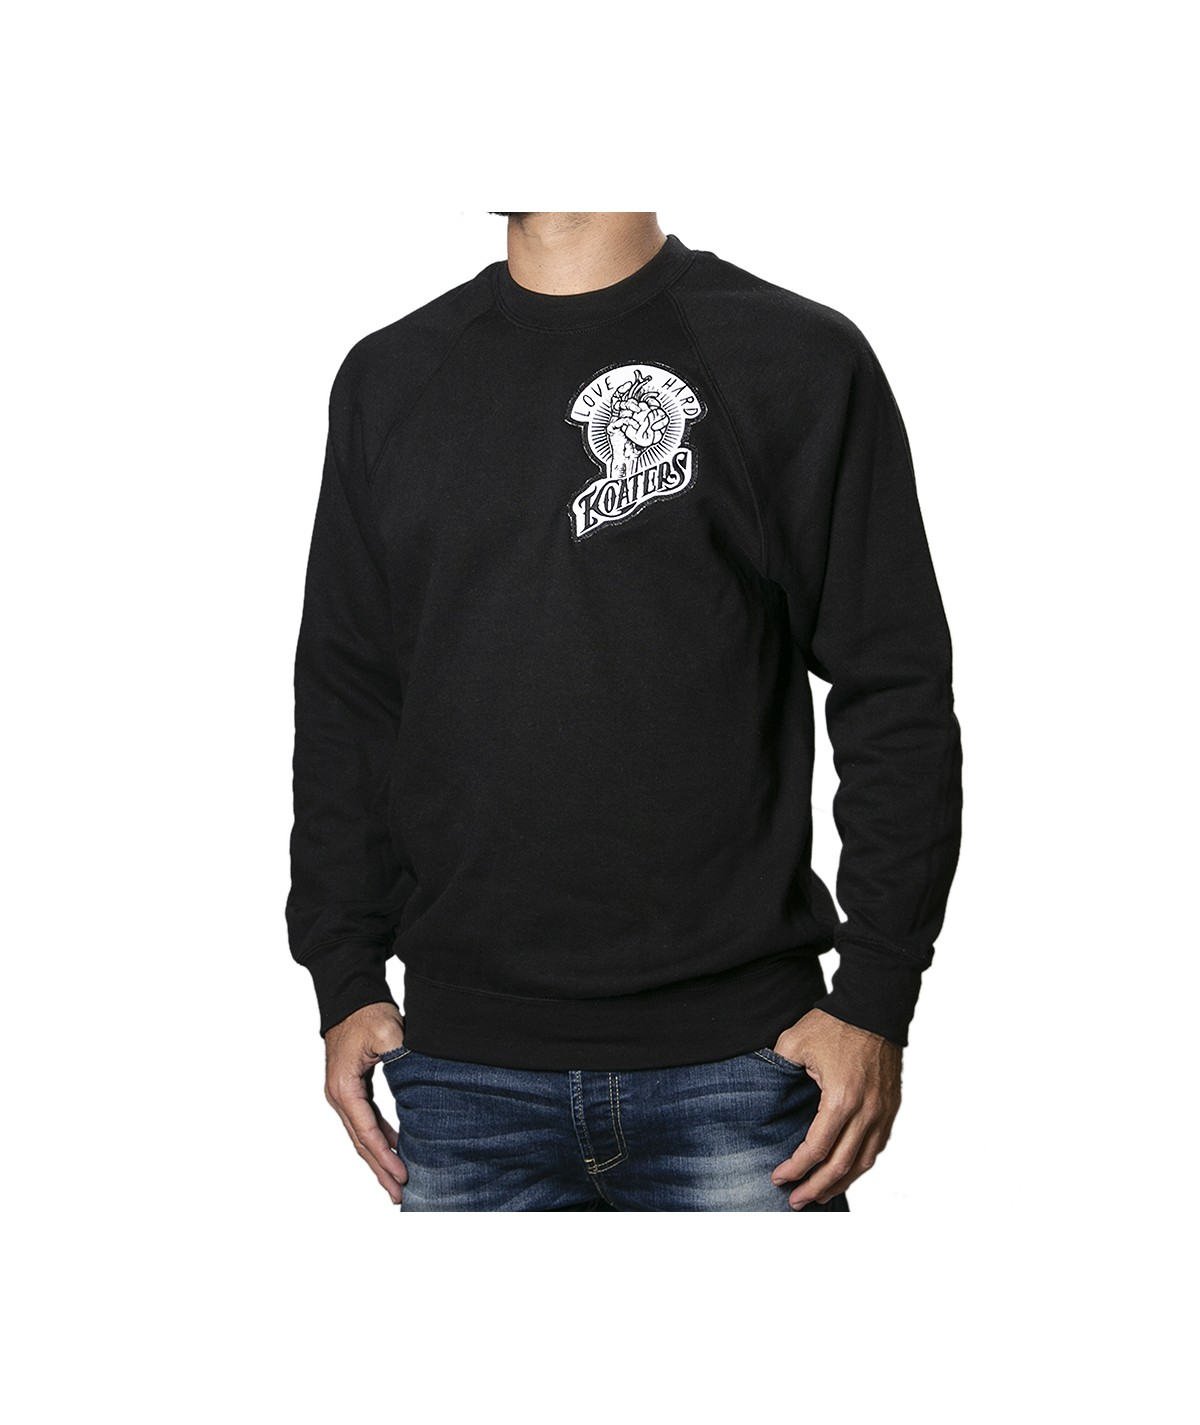 Sudadera LOVE HARD - negro